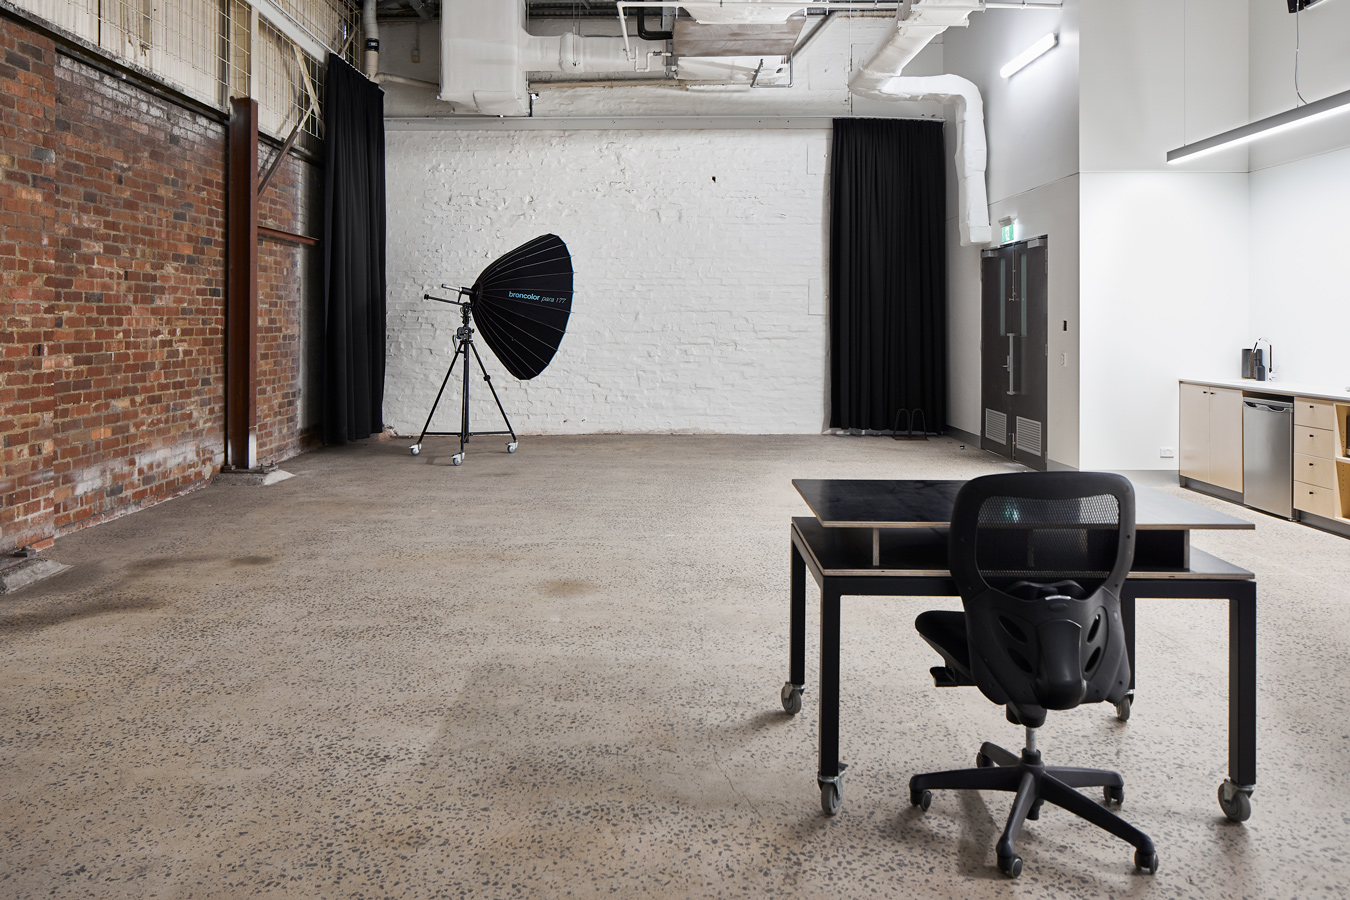 SUNSTUDIOS Melbourne Studio 2 professional photography space for hire